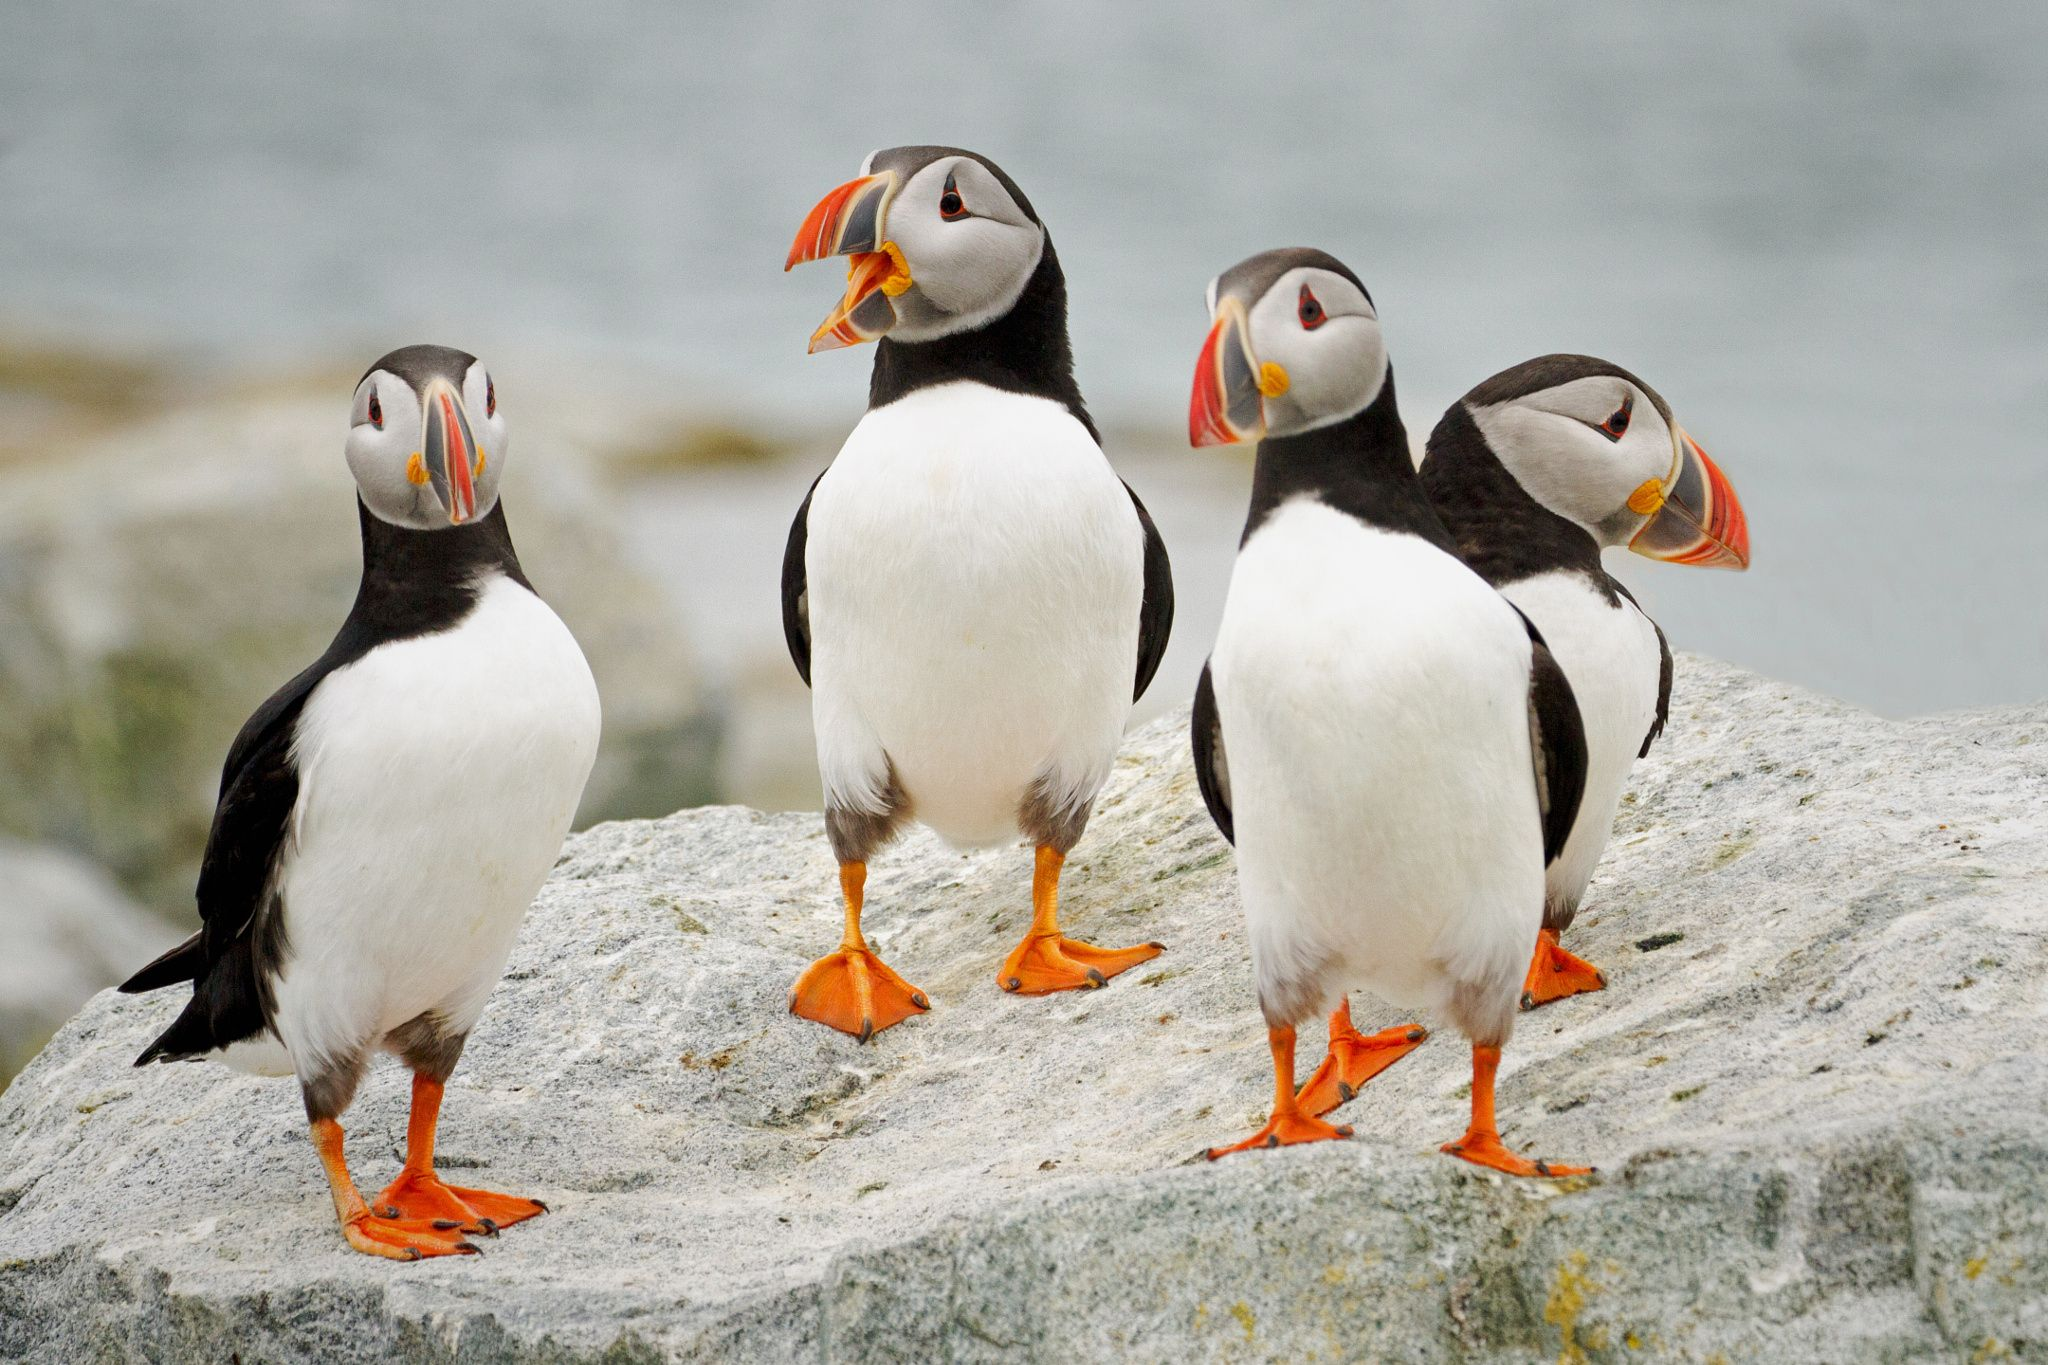 Puffin Party By Barbara Motter 500px Dipinti Illustrazioni